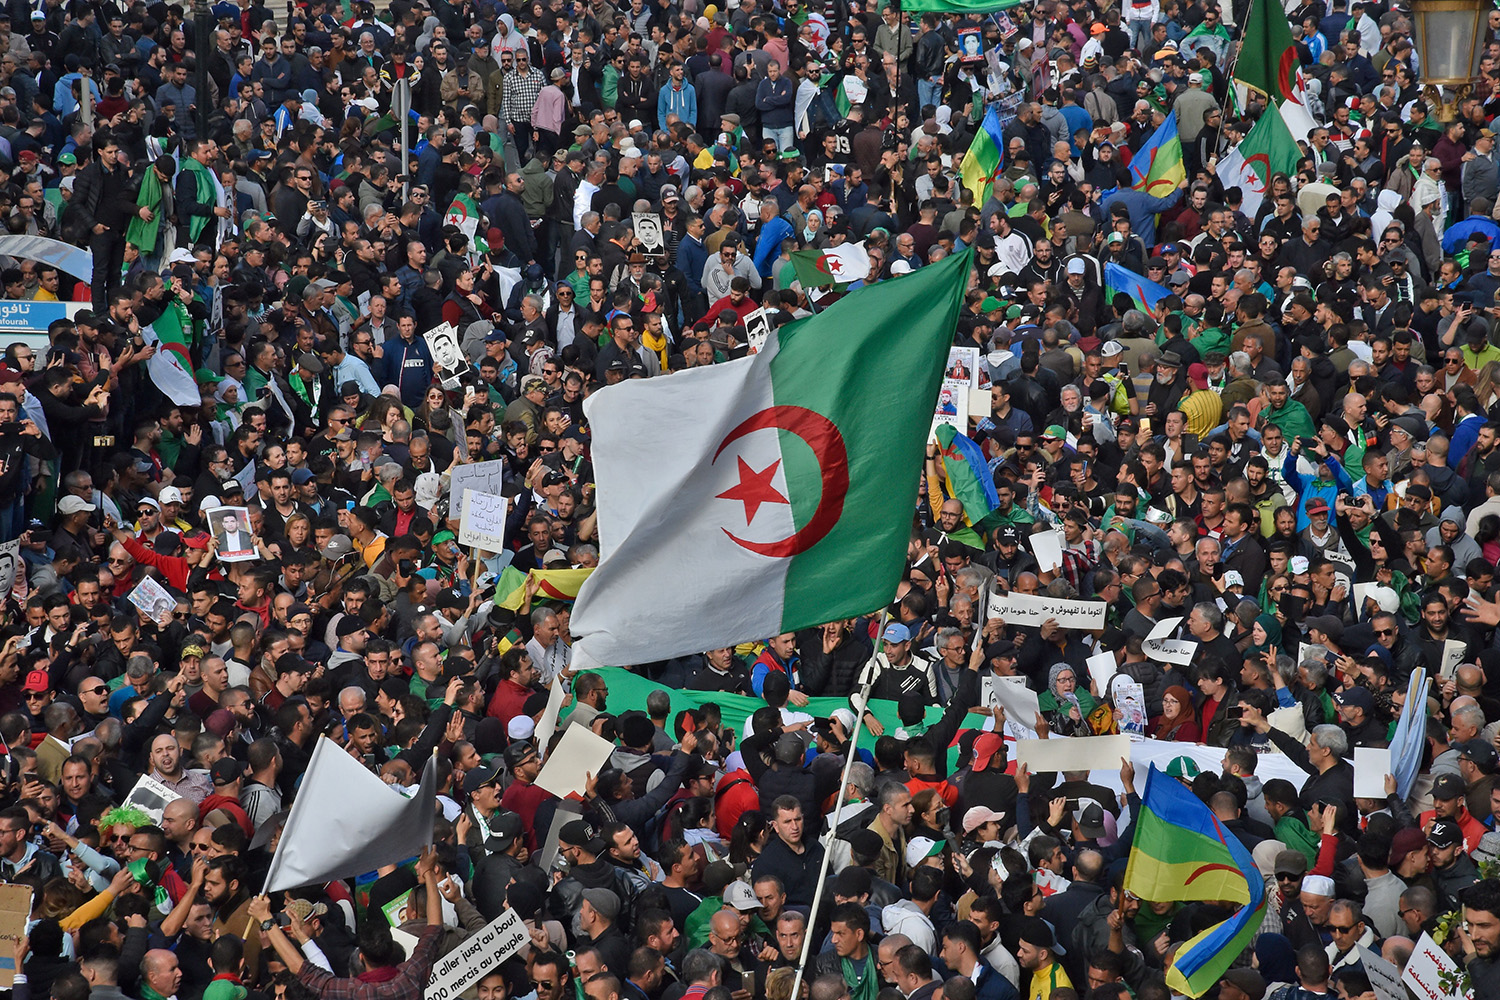 Algerian protesters wave the national flag during their weekly anti-government demonstration in Algiers on Feb. 21. RYAD KRAMDI/AFP via Getty Images